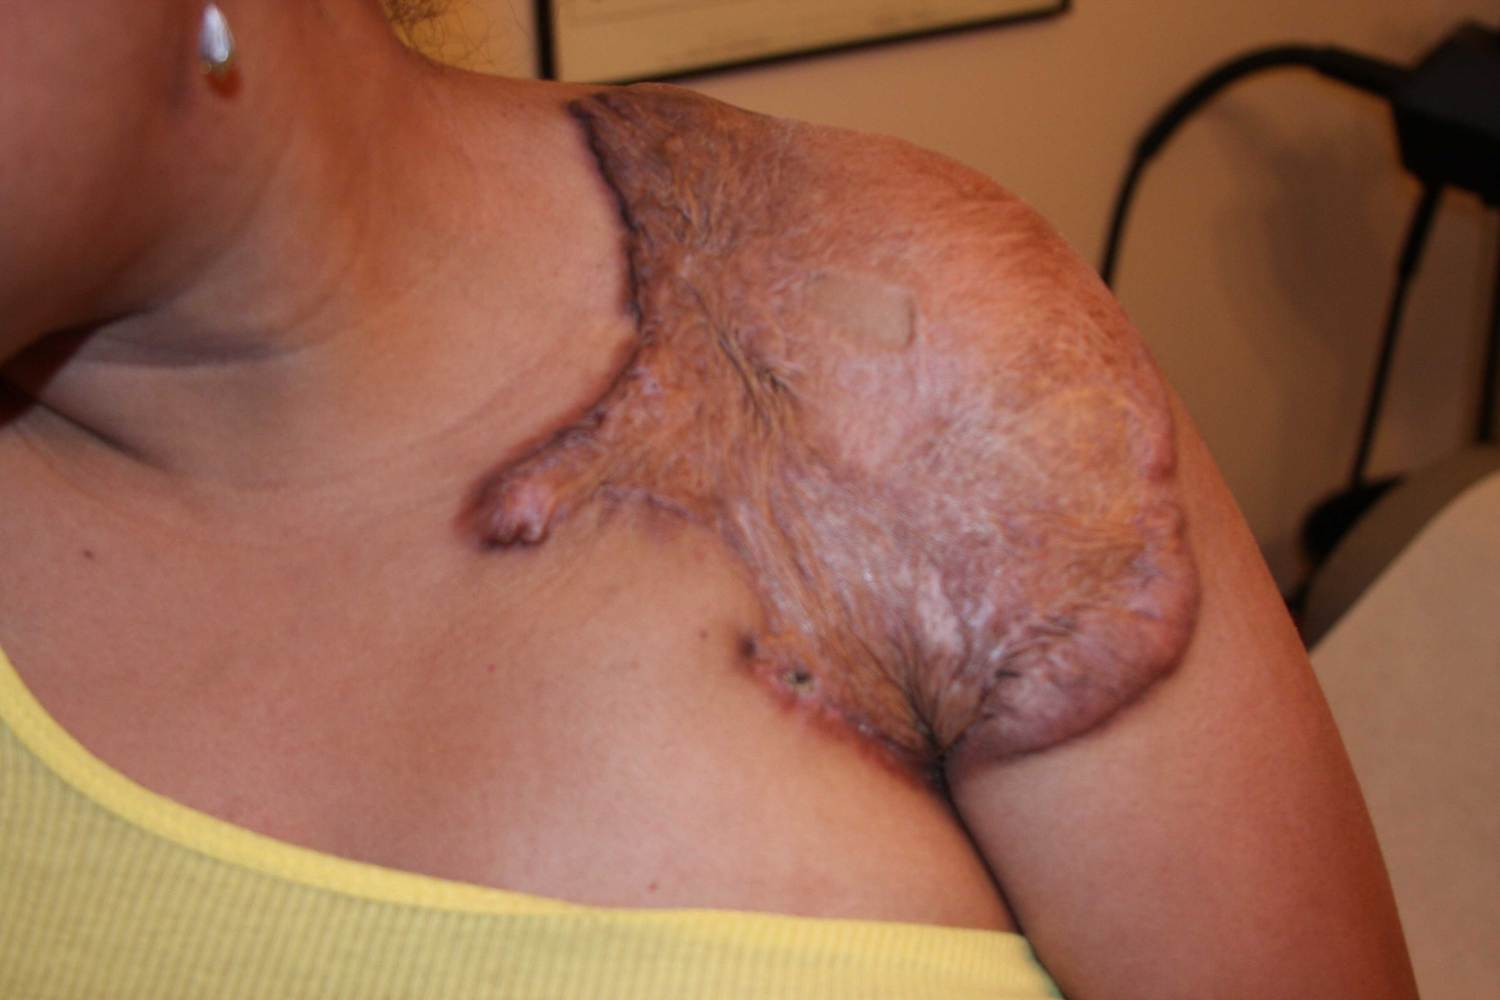 Large Keloid Patch after keloid surgery